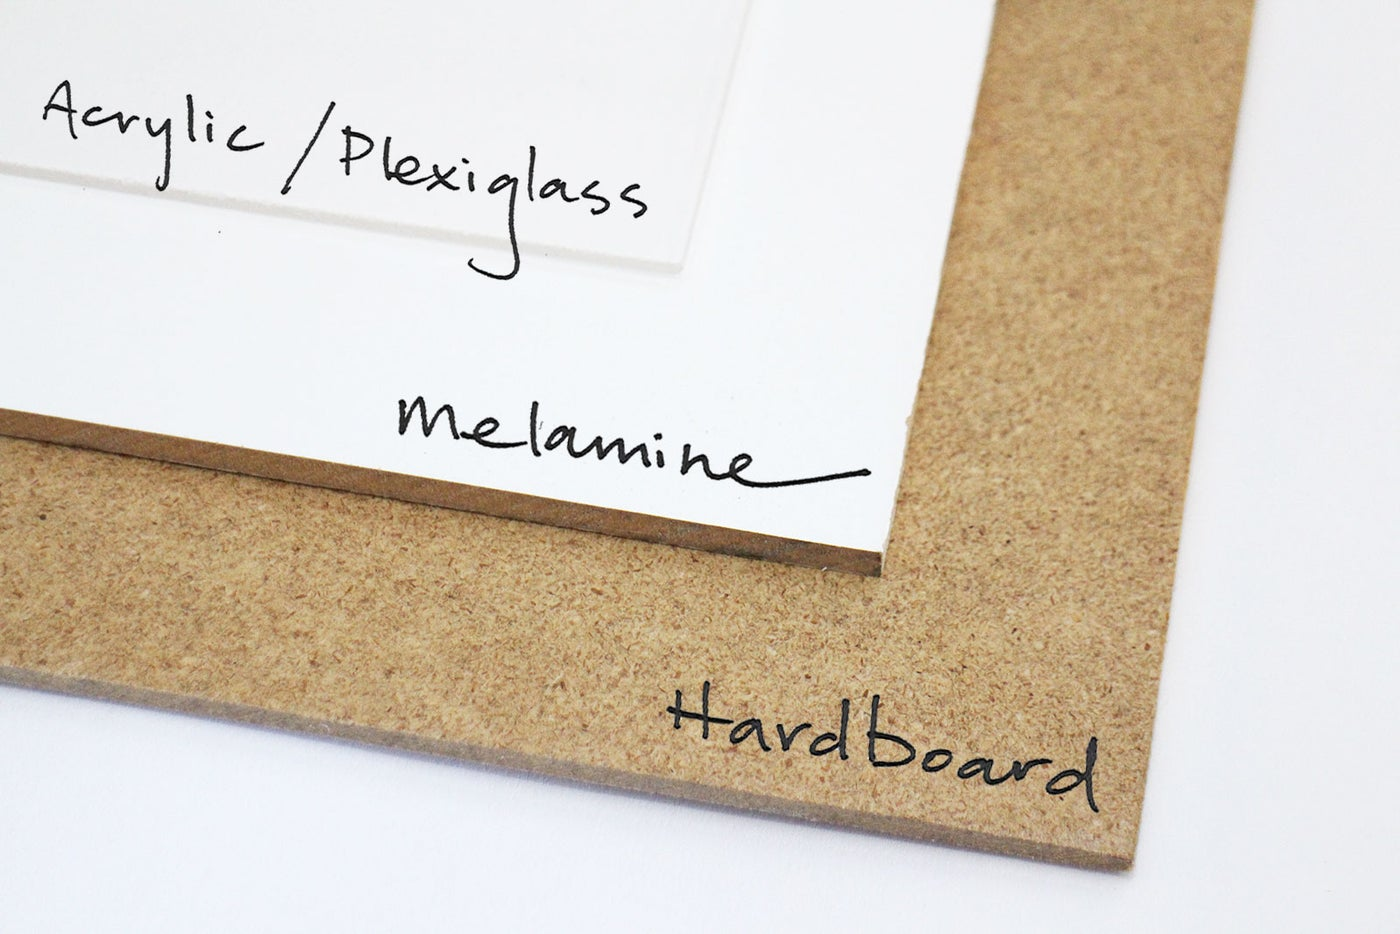 Mold Boards